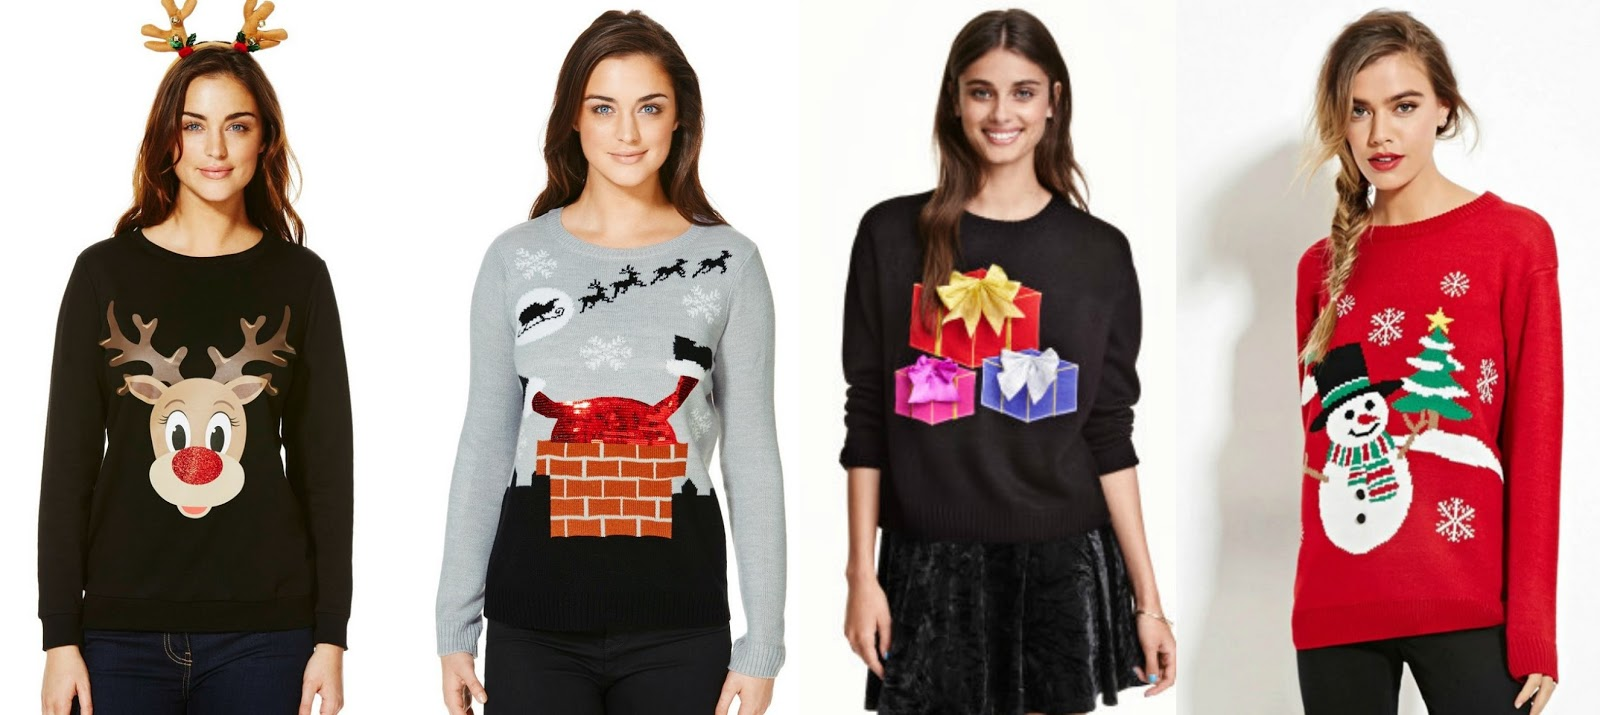 2 Person Christmas Sweater.Ugly Christmas Sweater Party 2015 Confessions Of This